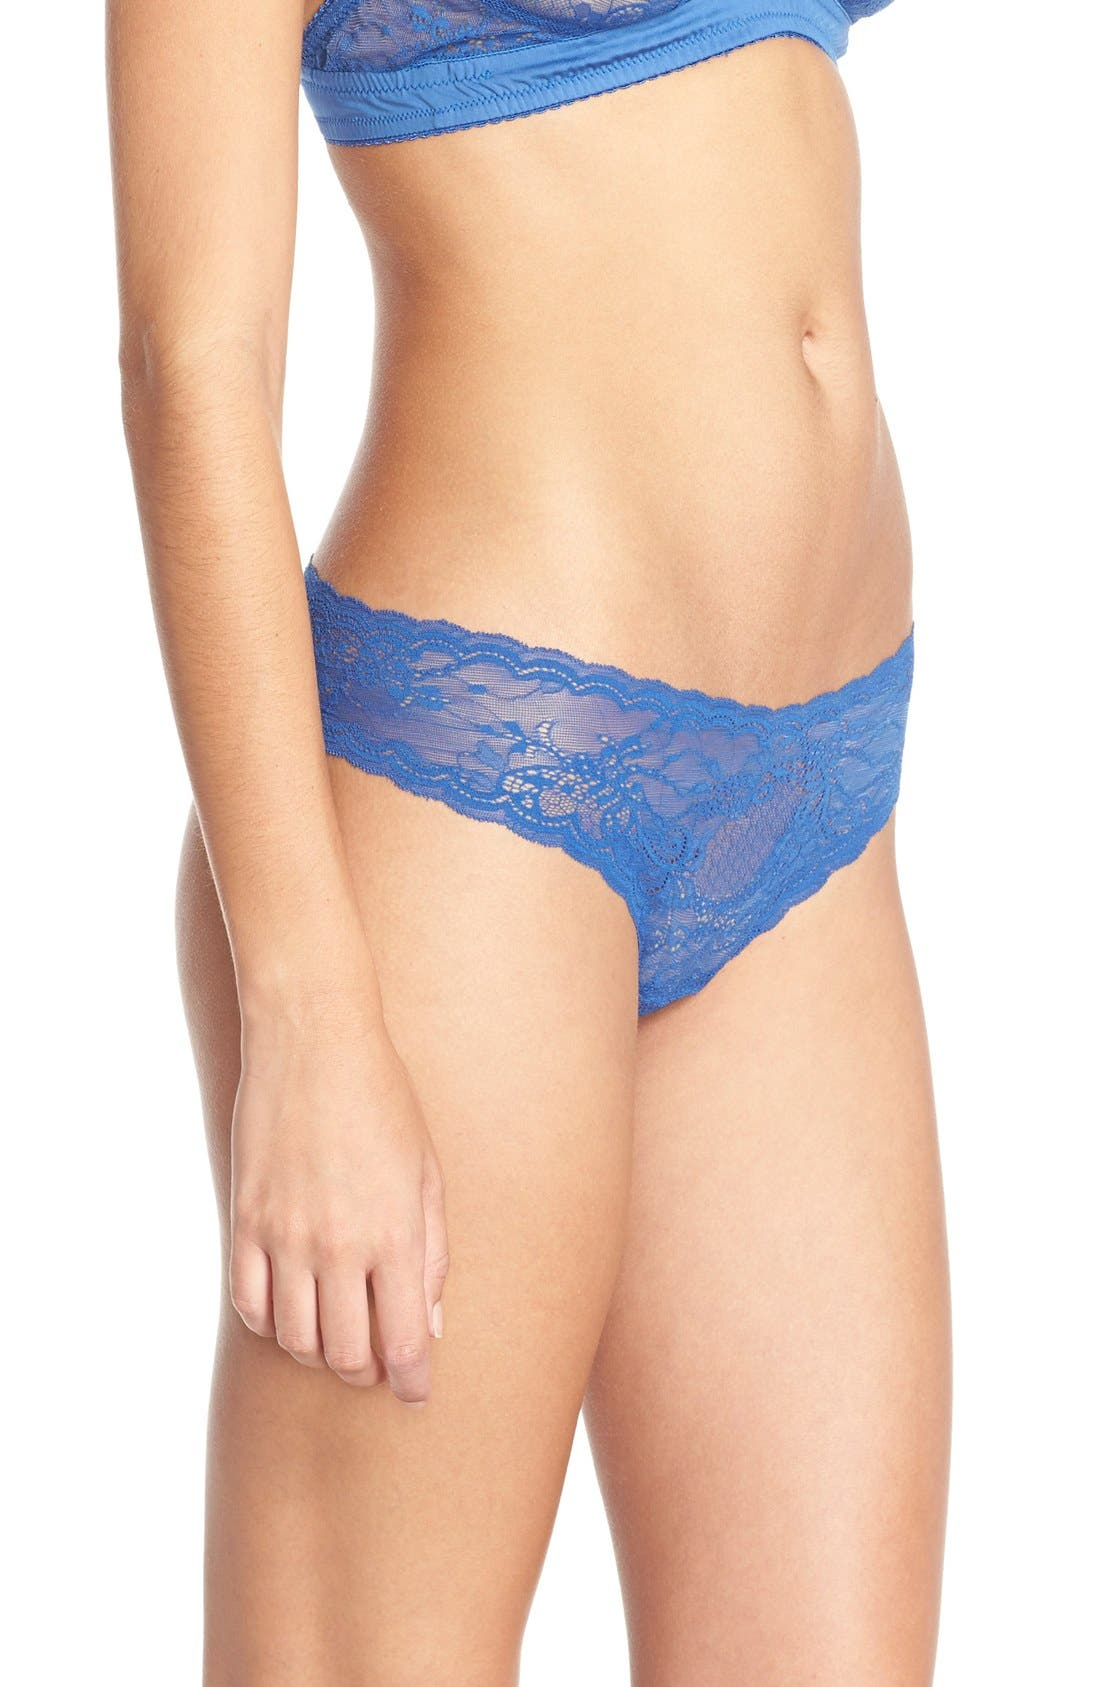 'Trenta' Low Rise Lace Thong,                             Alternate thumbnail 169, color,